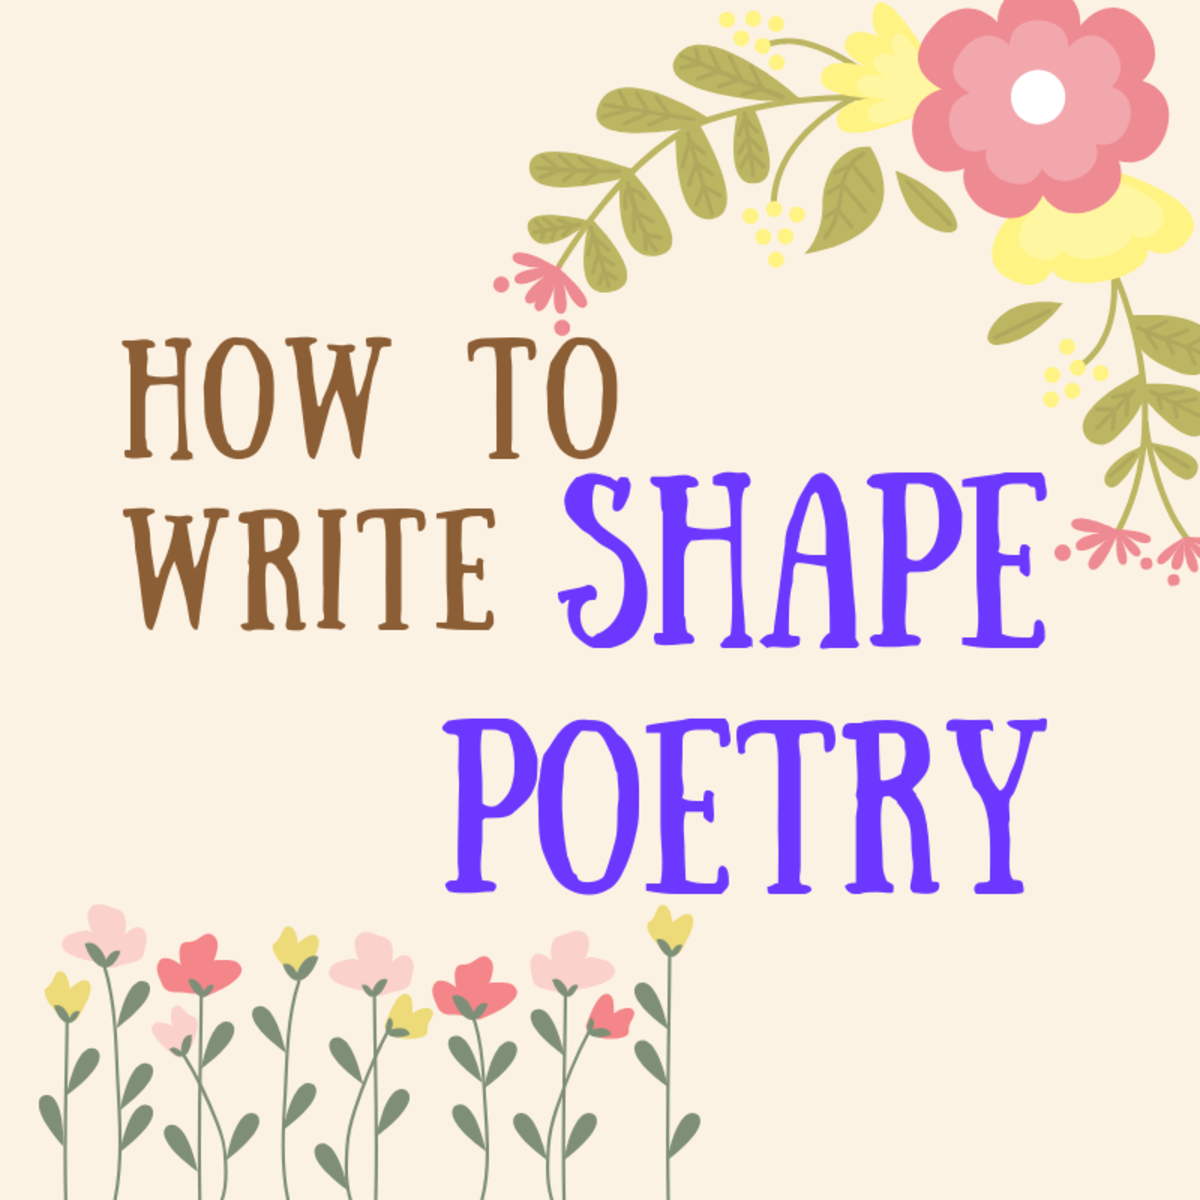 How to Write Shape Poetry